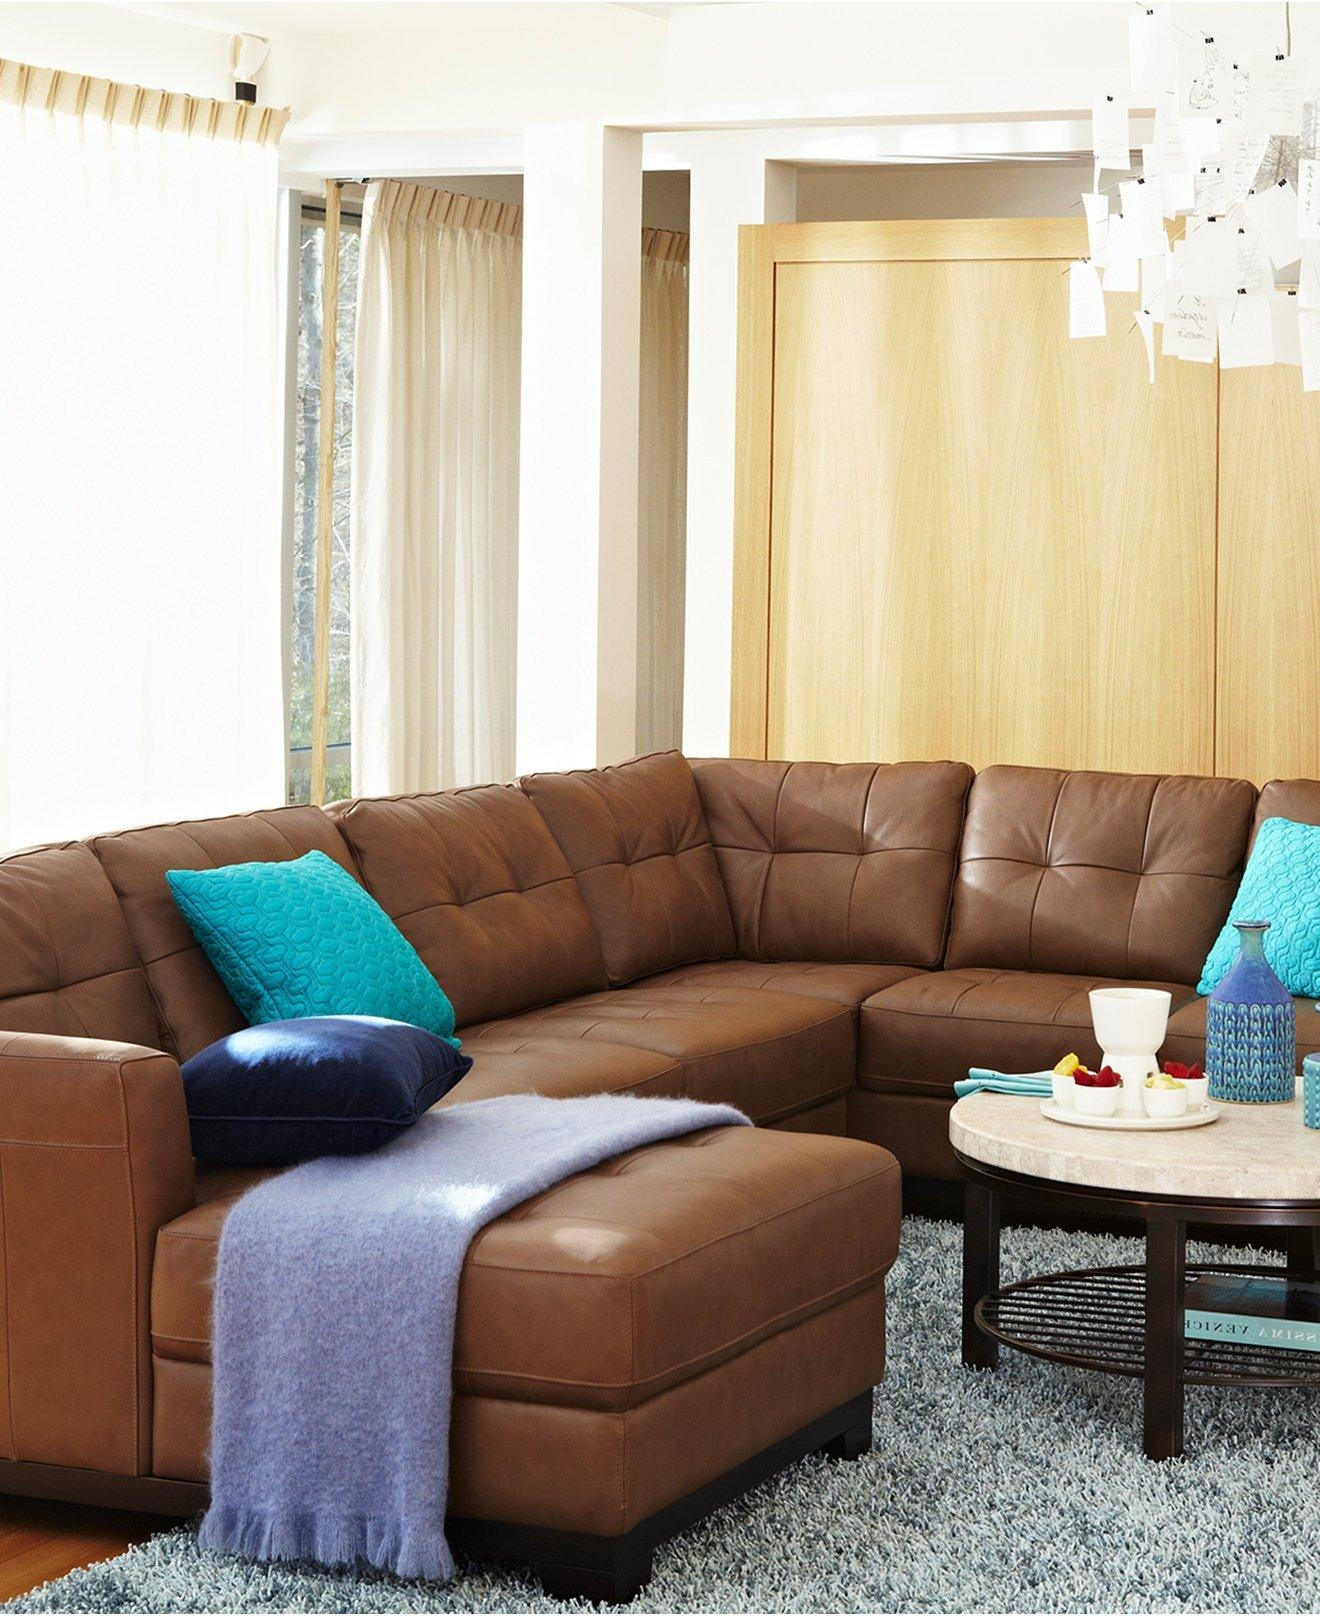 Sofas: Macys Leather Furniture | Macys Sectional | Macys Sectional Inside Macys Leather Sectional Sofa (Image 16 of 20)